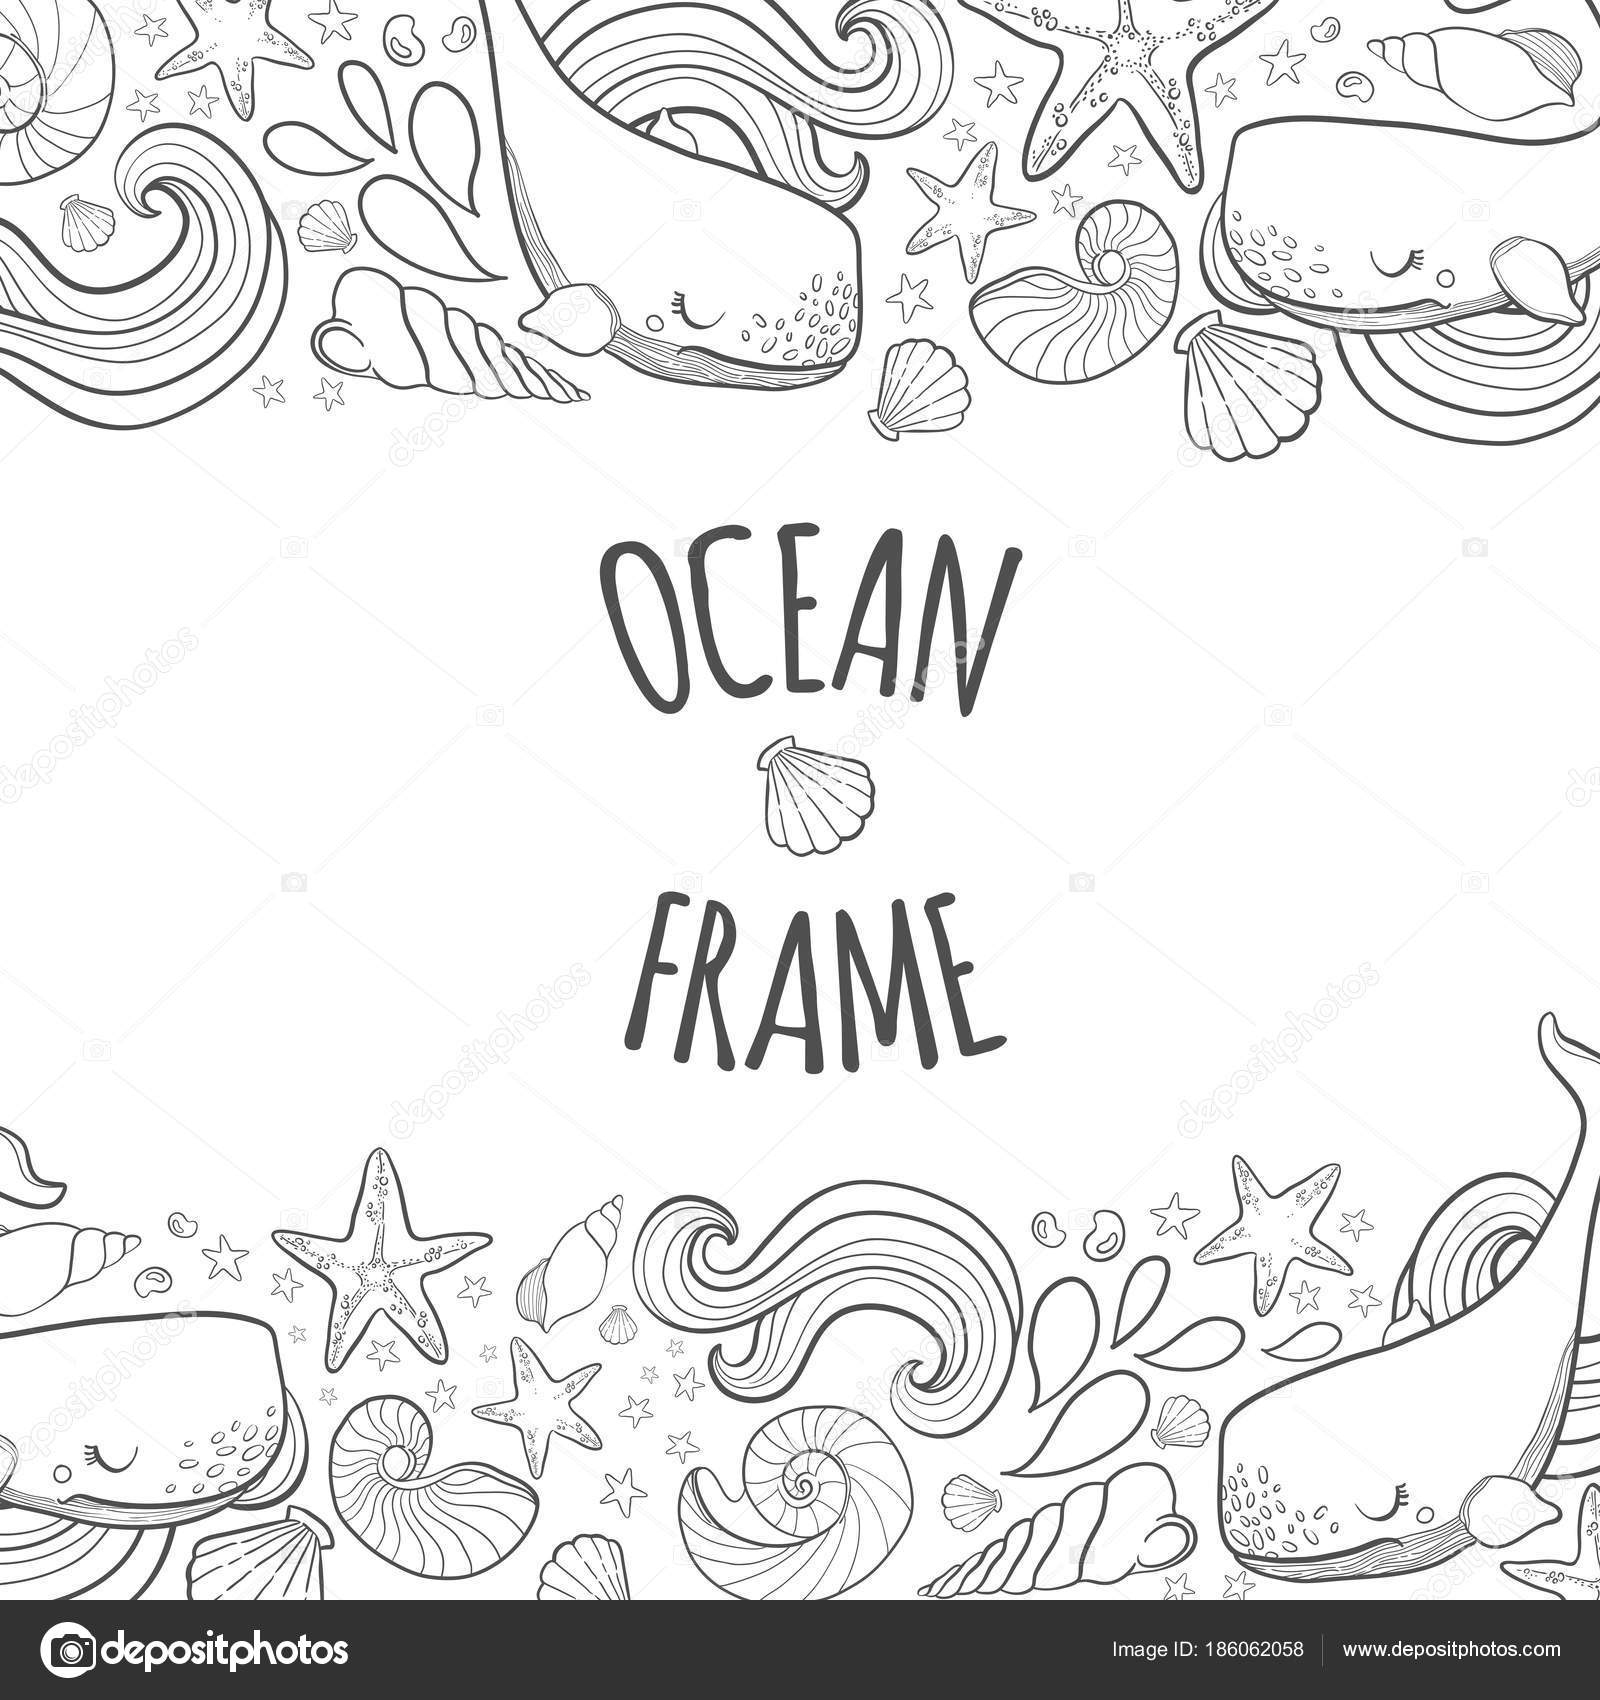 Graphic Frame Whales Flying In The Sky Sea And Ocean Creatures Coloring Book Page